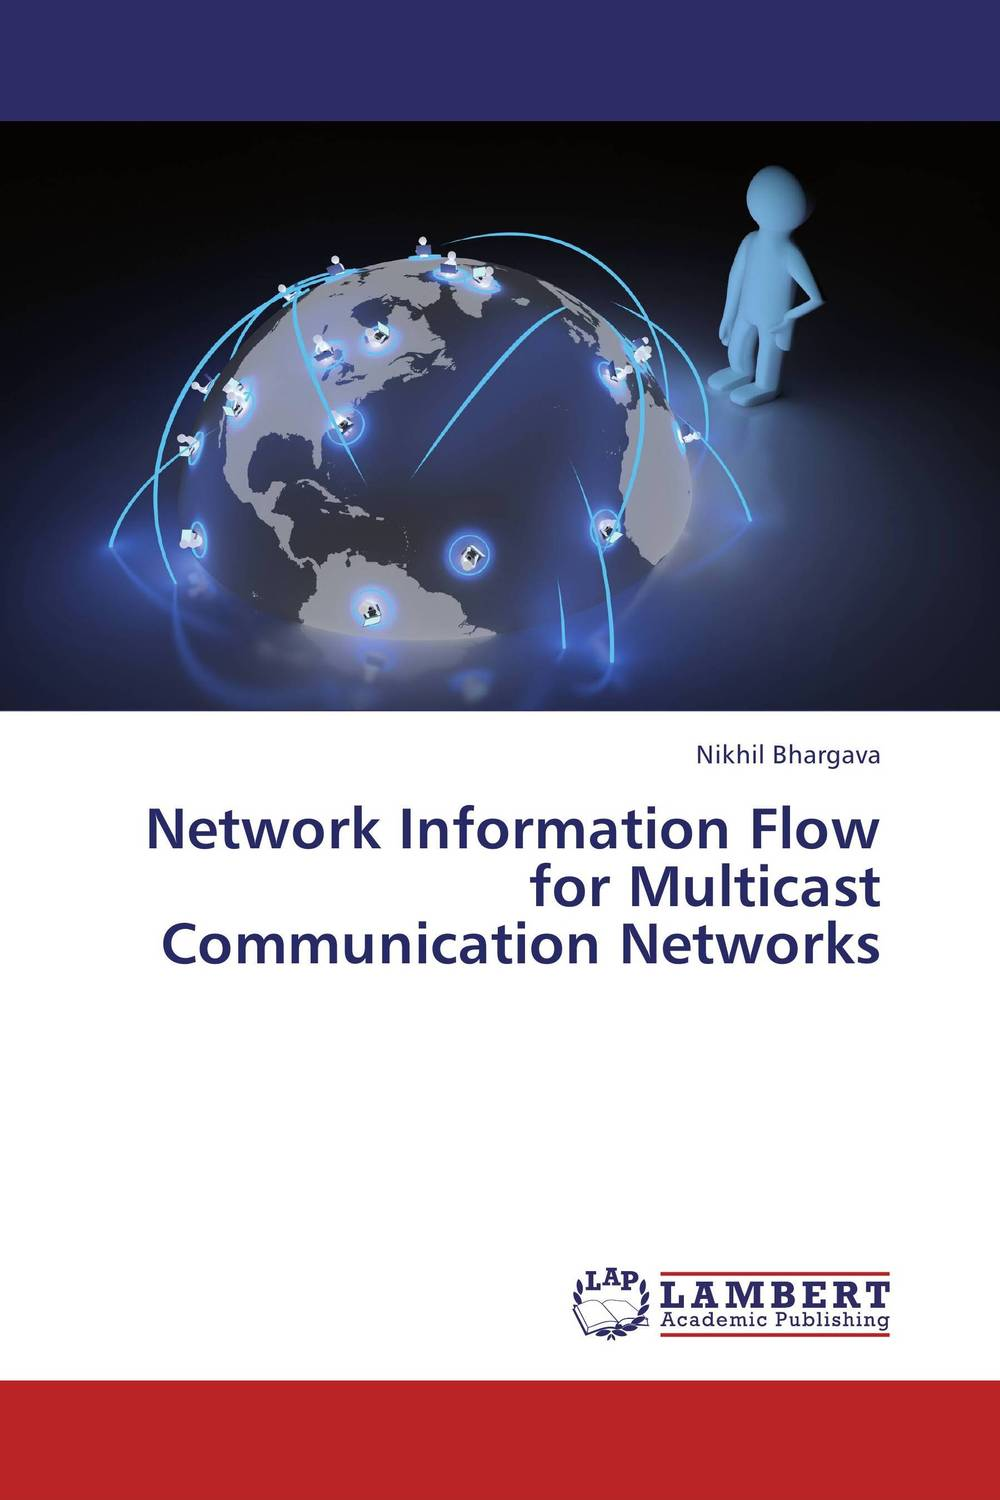 Network Information Flow for Multicast Communication Networks basic information theory thermo limits for network structures